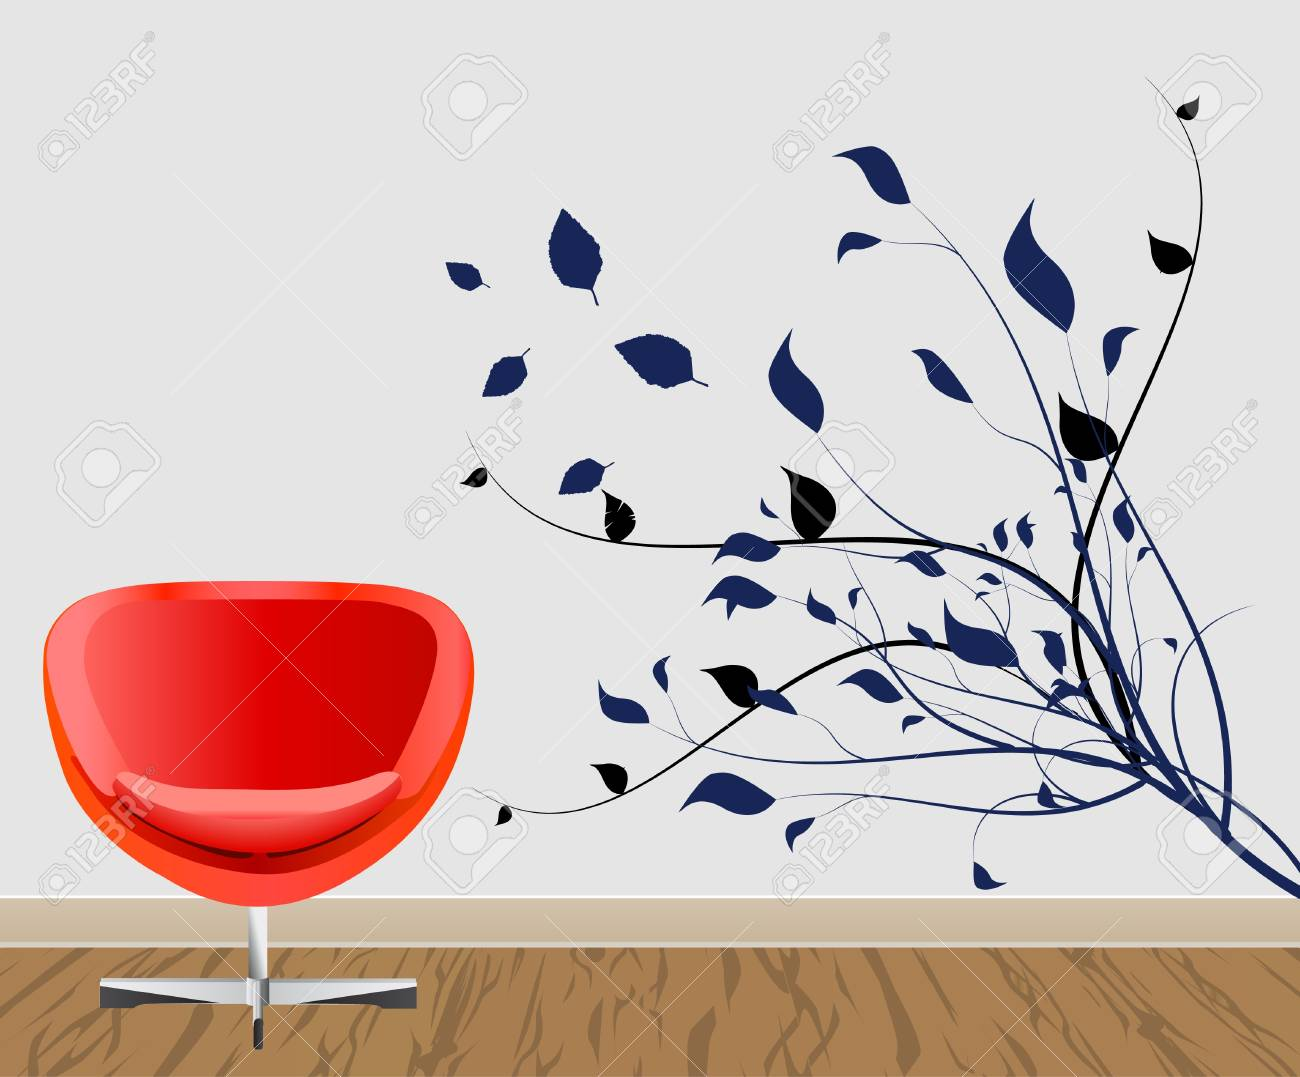 wall decoration Stock Vector - 9932111